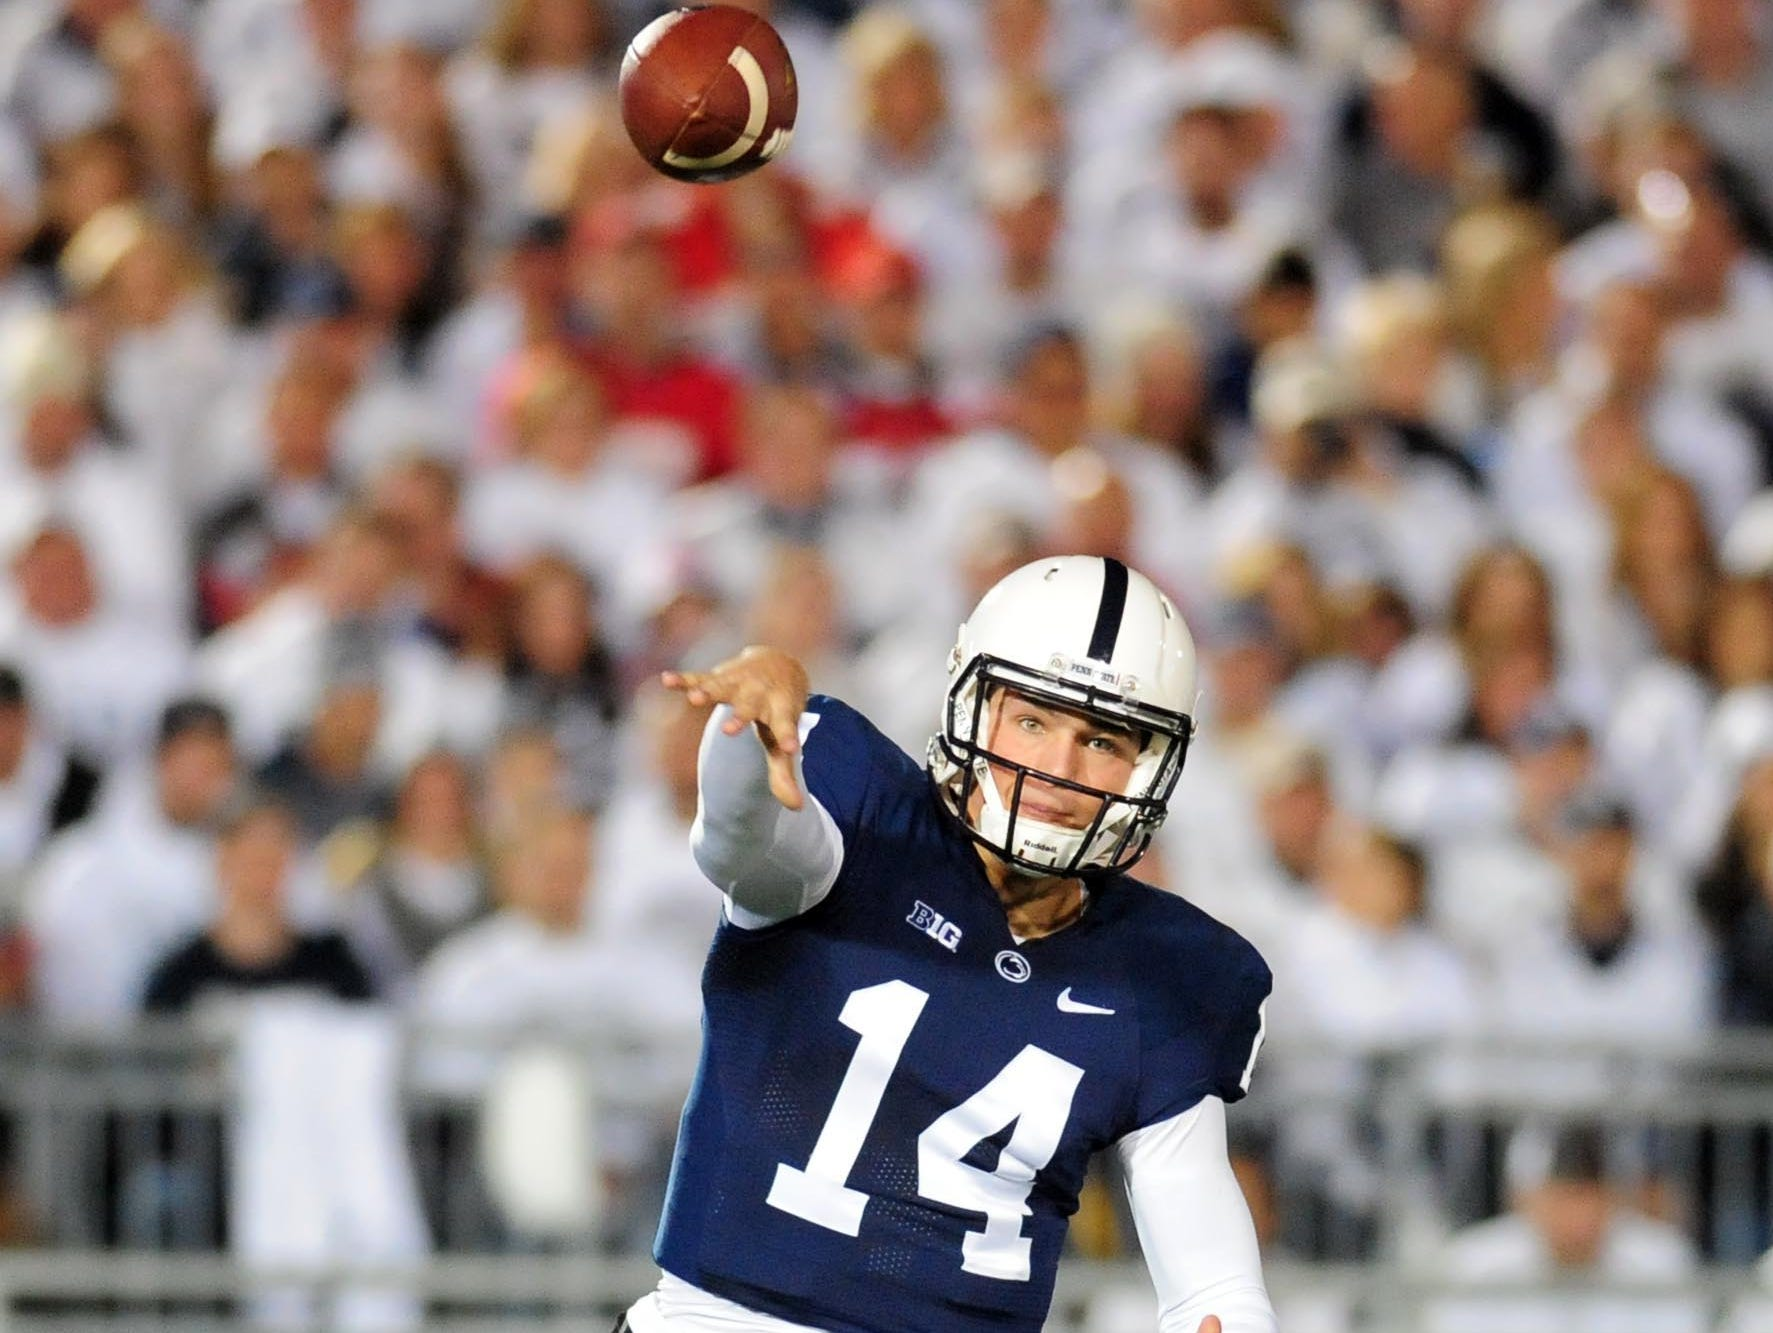 Quarterback Christian Hackenberg struggled this year behind an inexperienced offensive line.